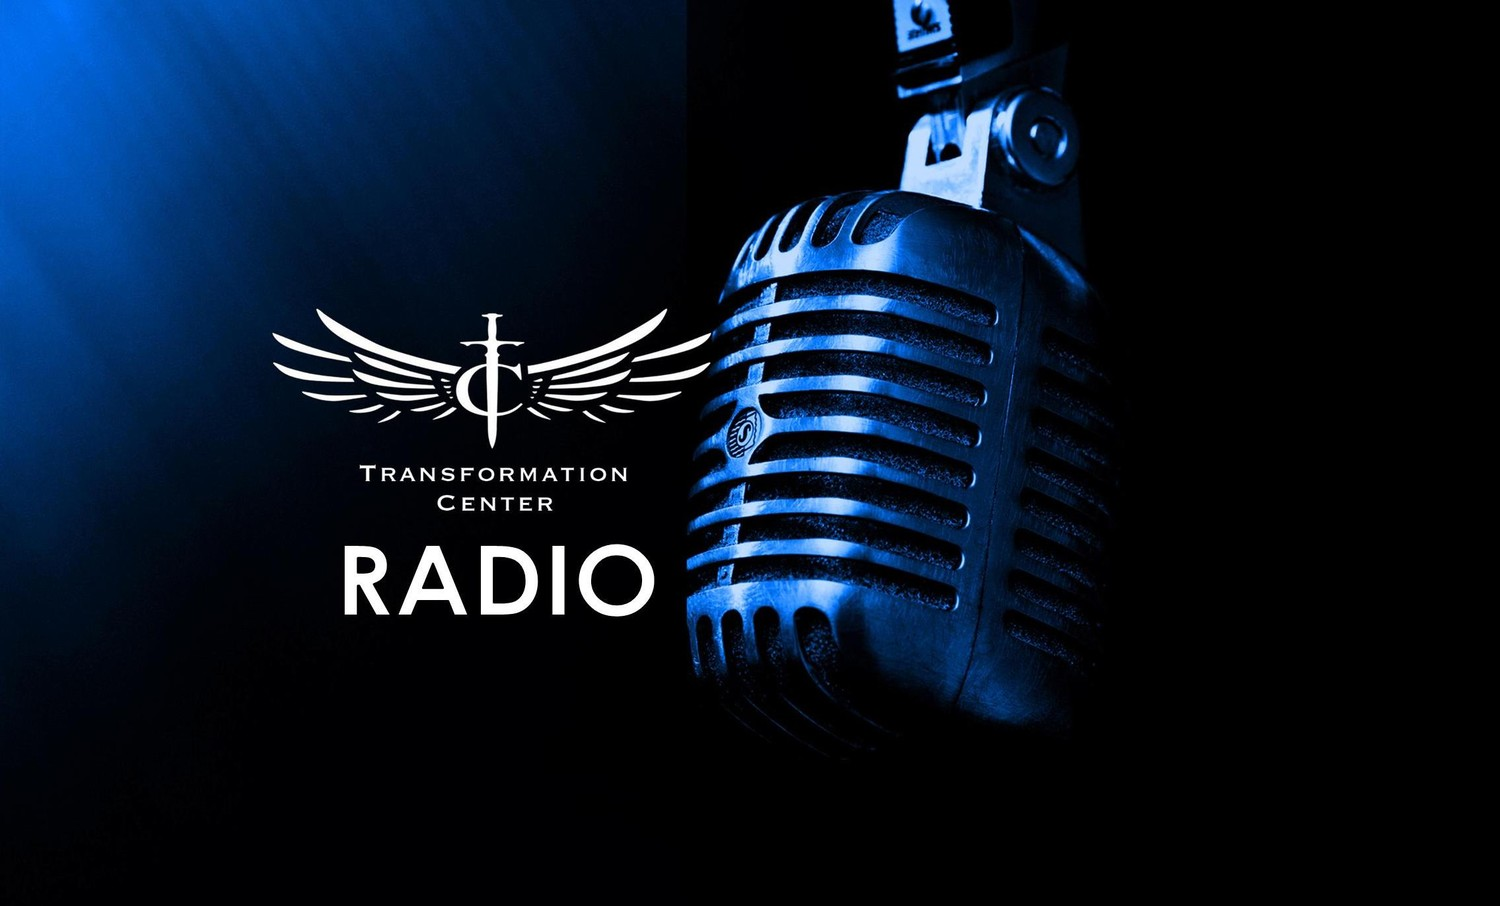 Transformation Center Radio Online 24/7